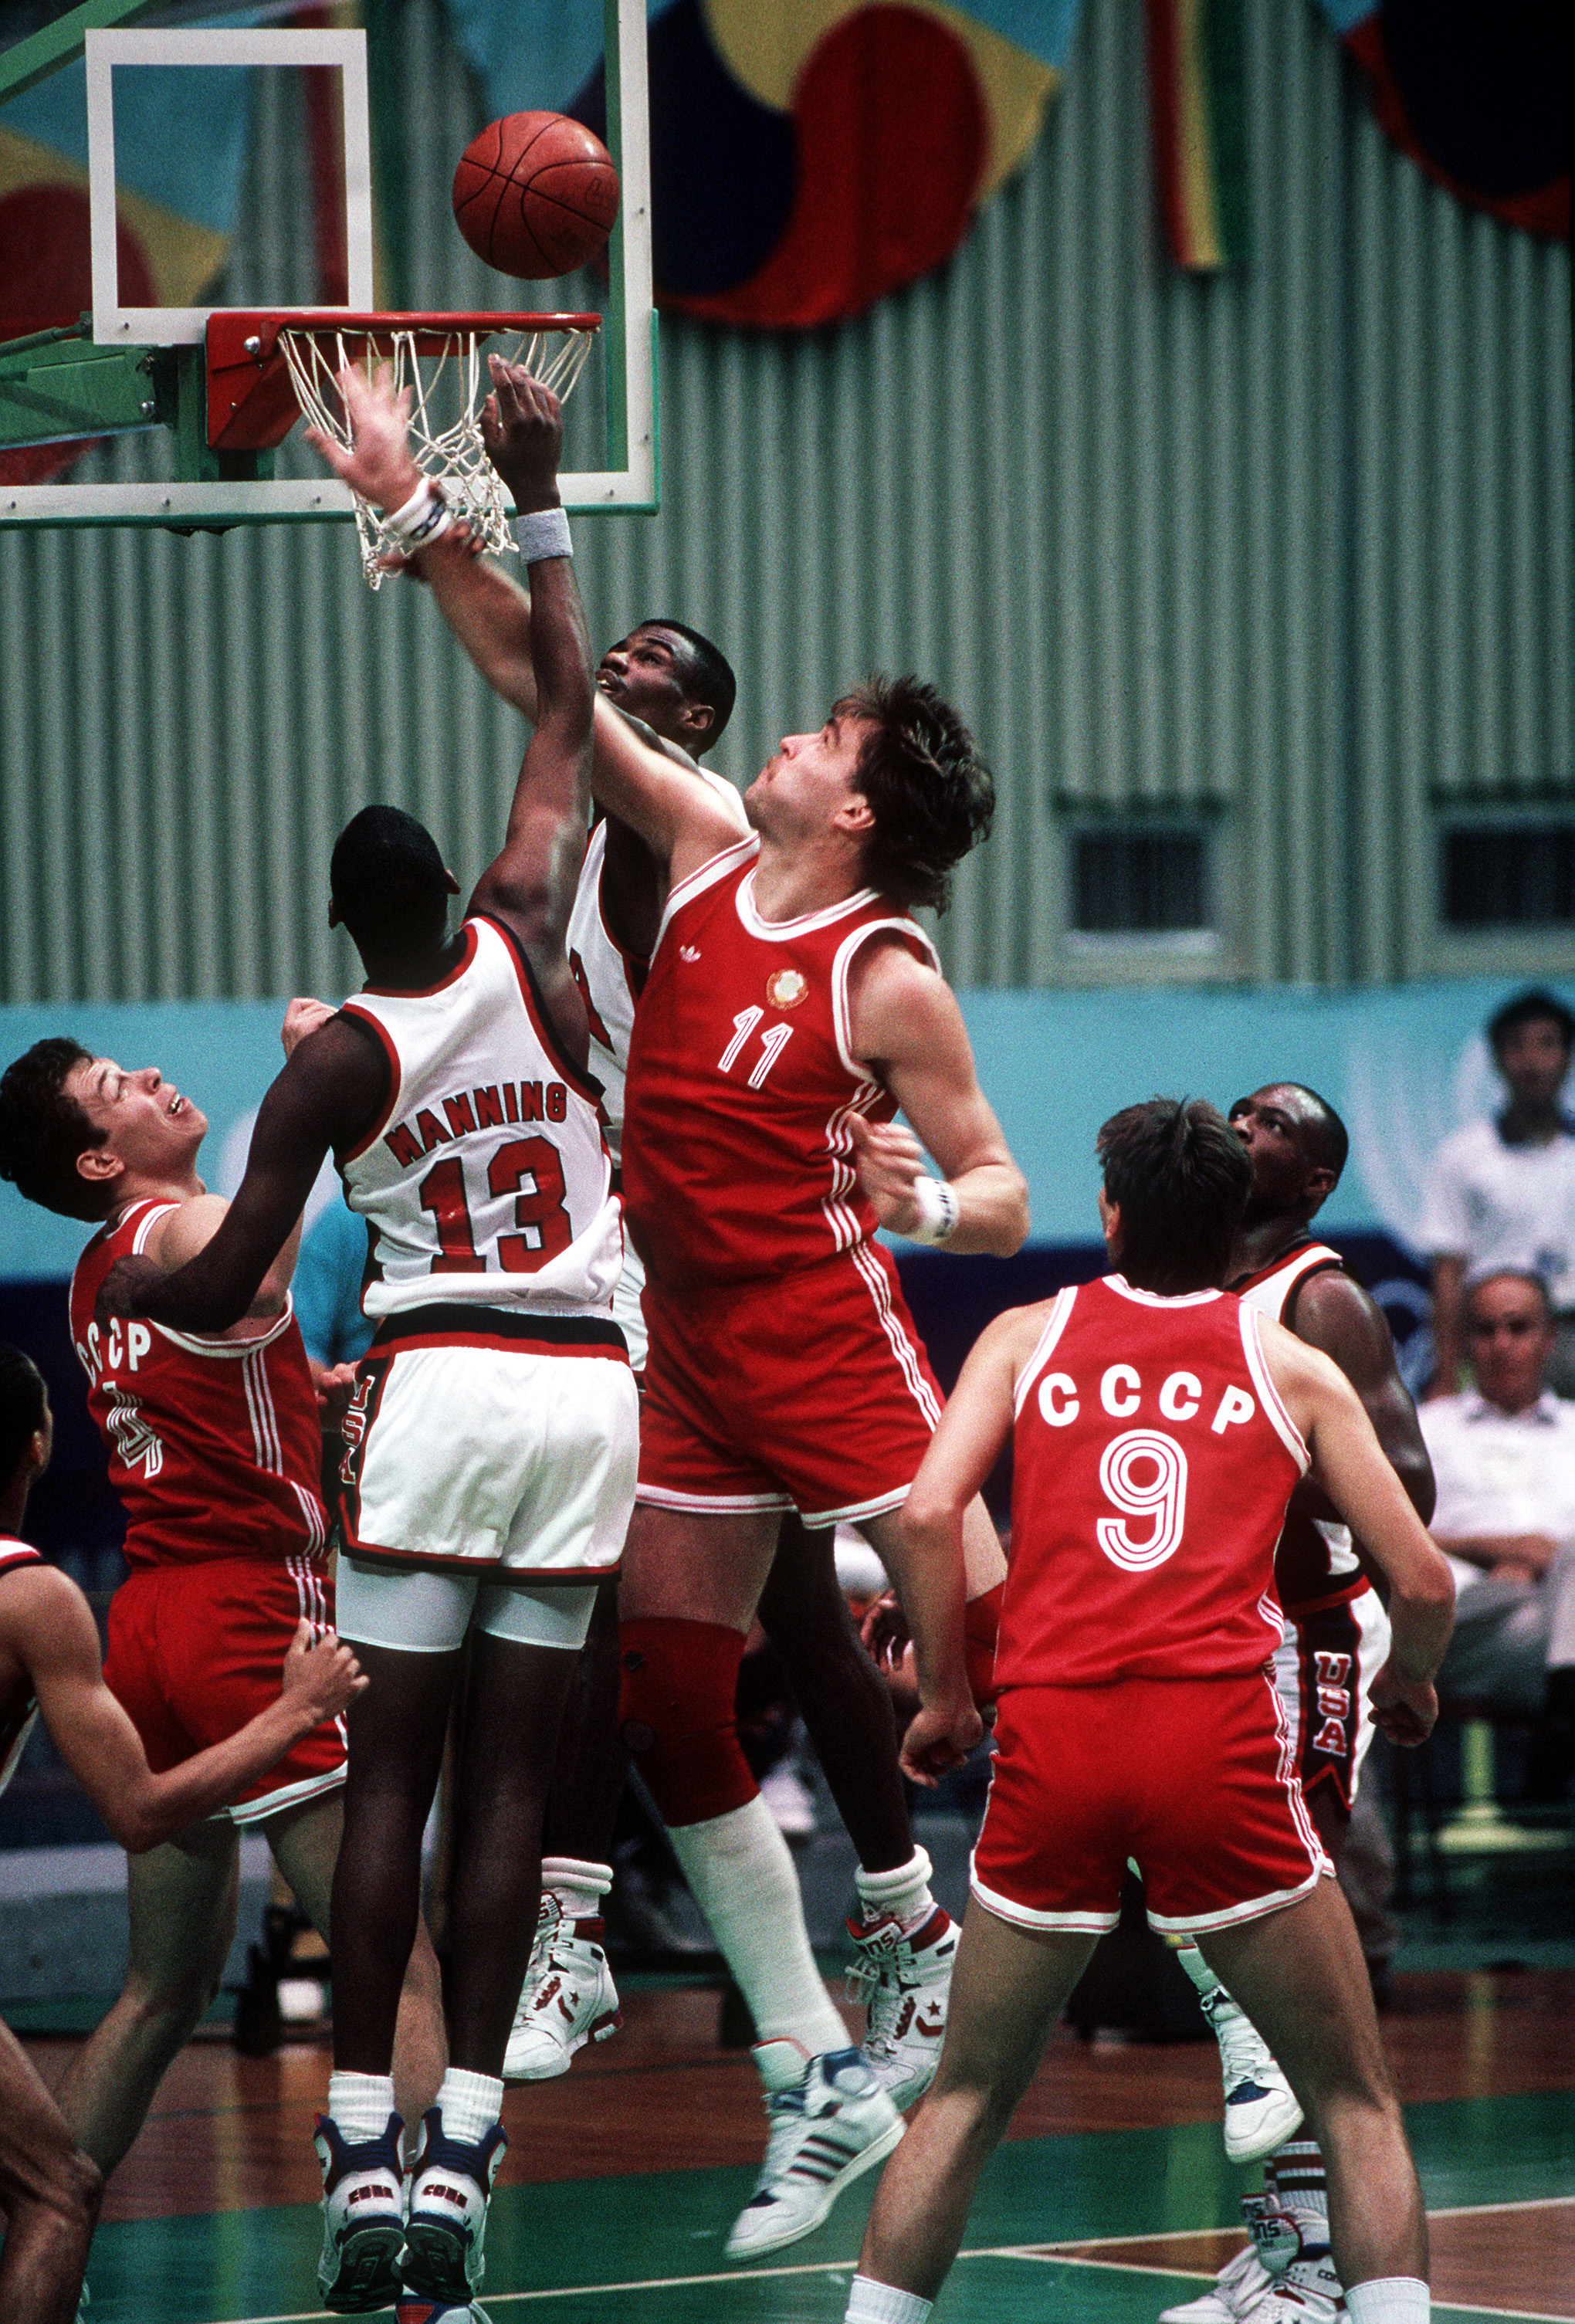 Danny Manning and the Navy's David Robinson battle a Soviet player for a rebound during the Soviet upset over the US basketball team at the XXIVth Olympiad.